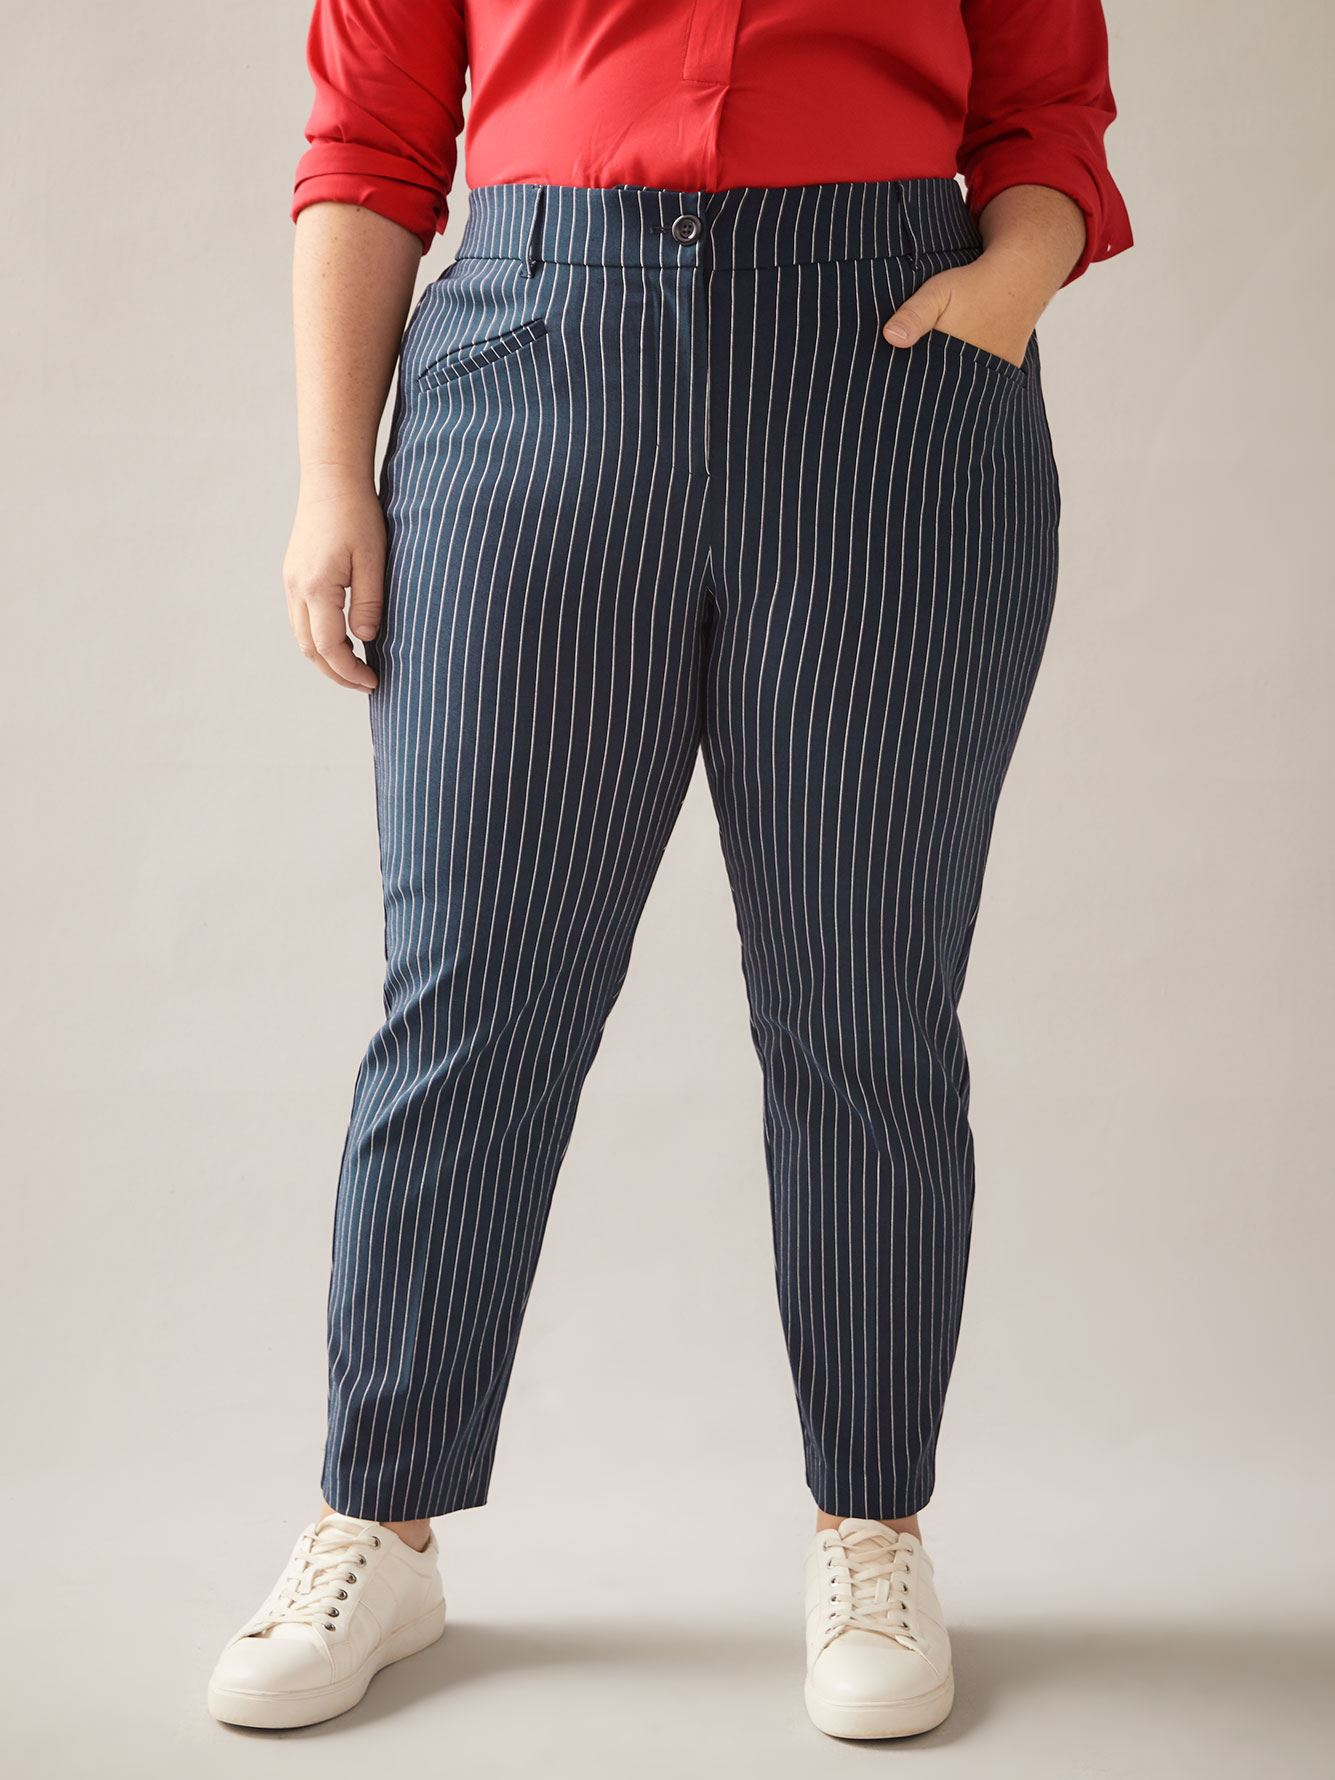 Savvy Chic, Printed Pant with Welt Pockets - In Every Story